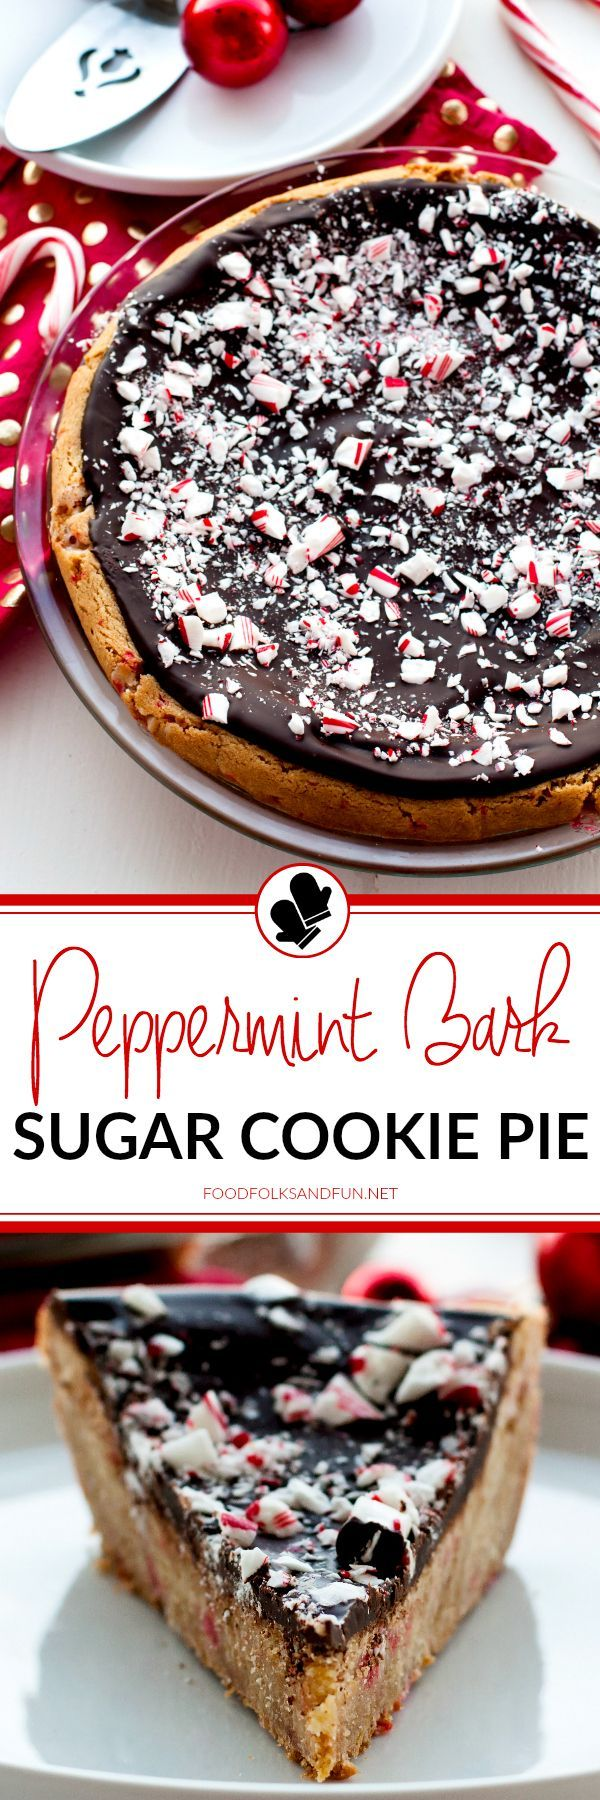 This Peppermint Bark Sugar Cookie Pie is a delicious, festive dessert that is perfect for holiday entertaining and SO easy to make. Peppermint, dark chocolate, and sugar cookie-how could you go wrong?! @walmart #BakingWithBetty #ad